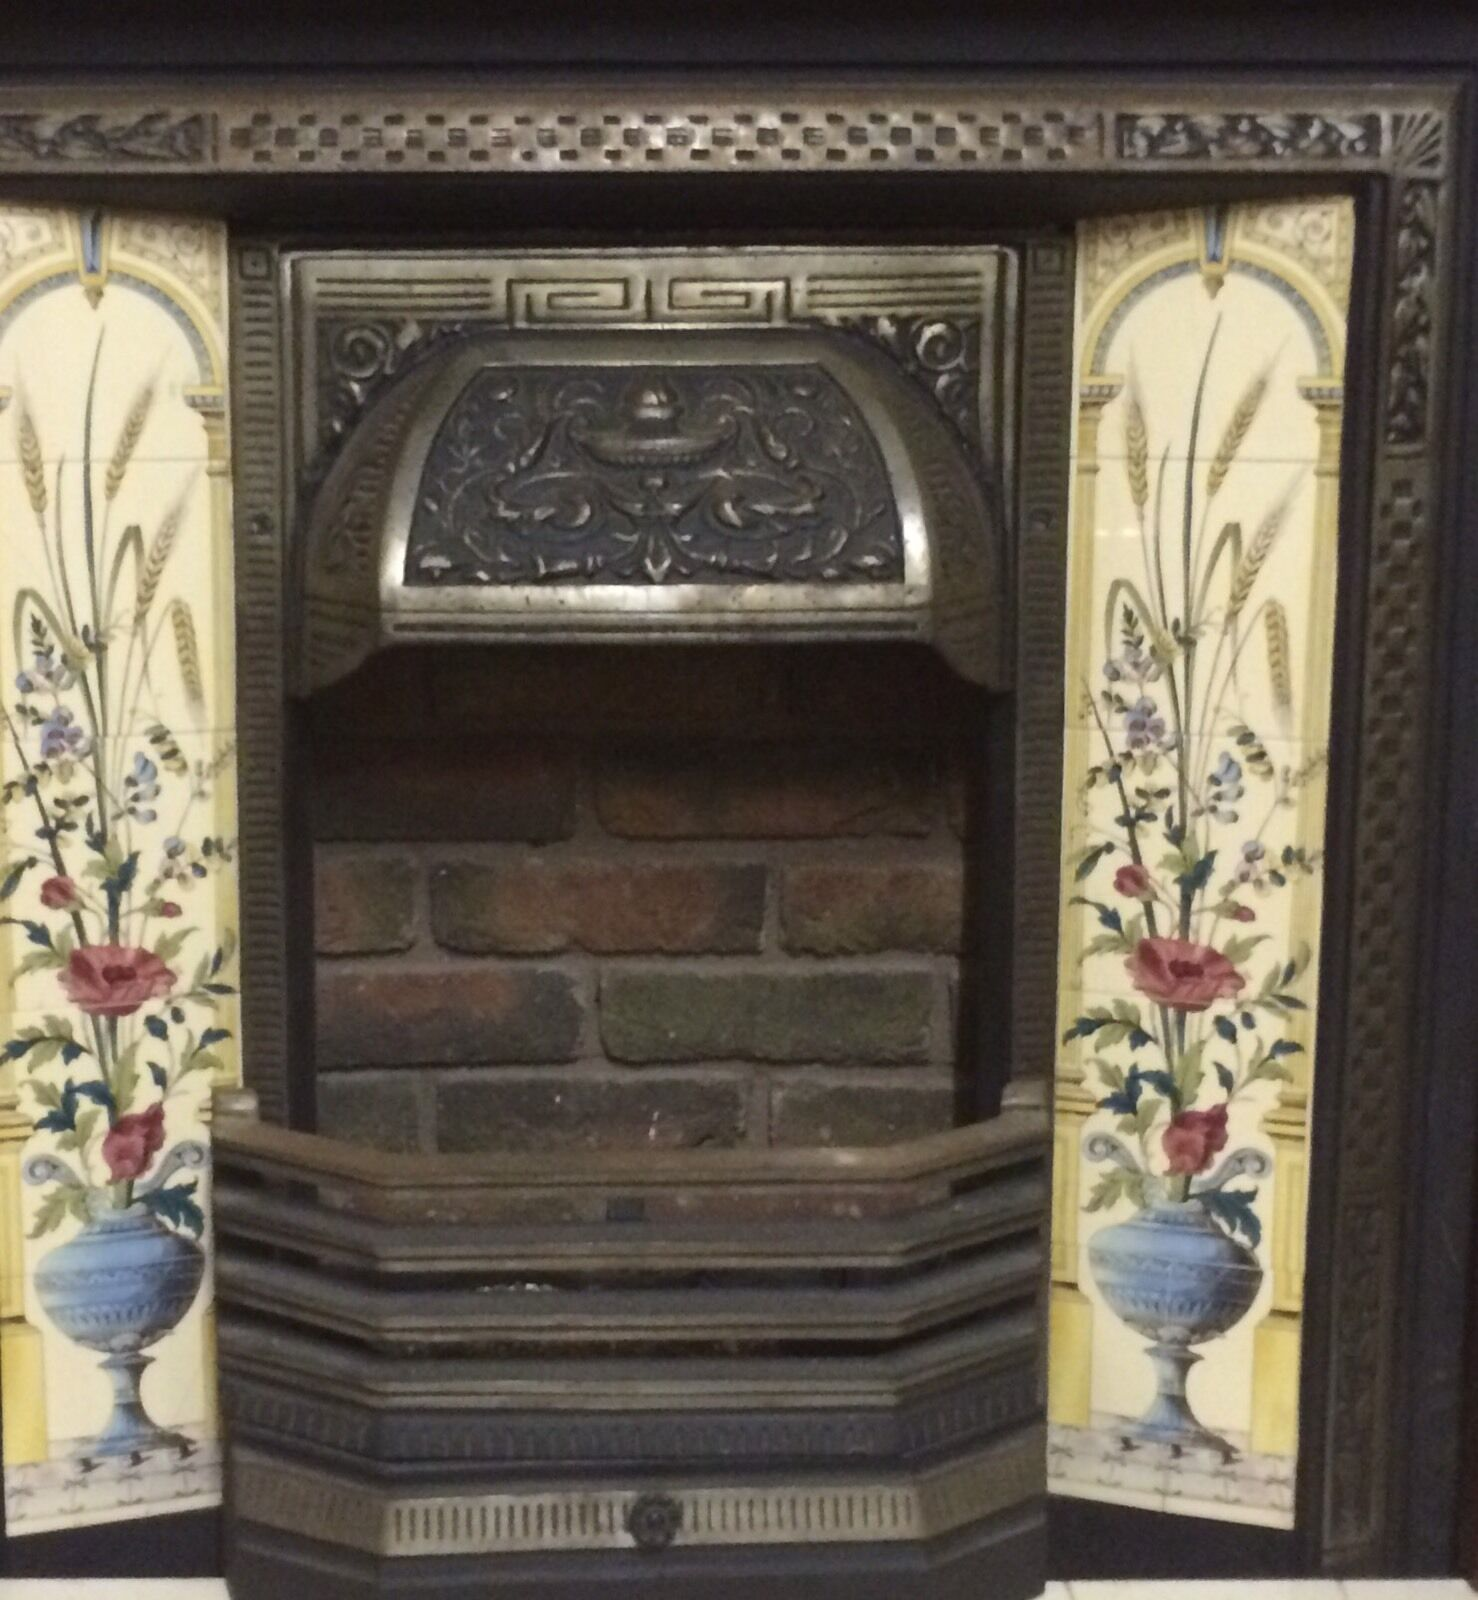 Decorative Cast Iron Fireplace And Open Gas Fire Picclick Uk